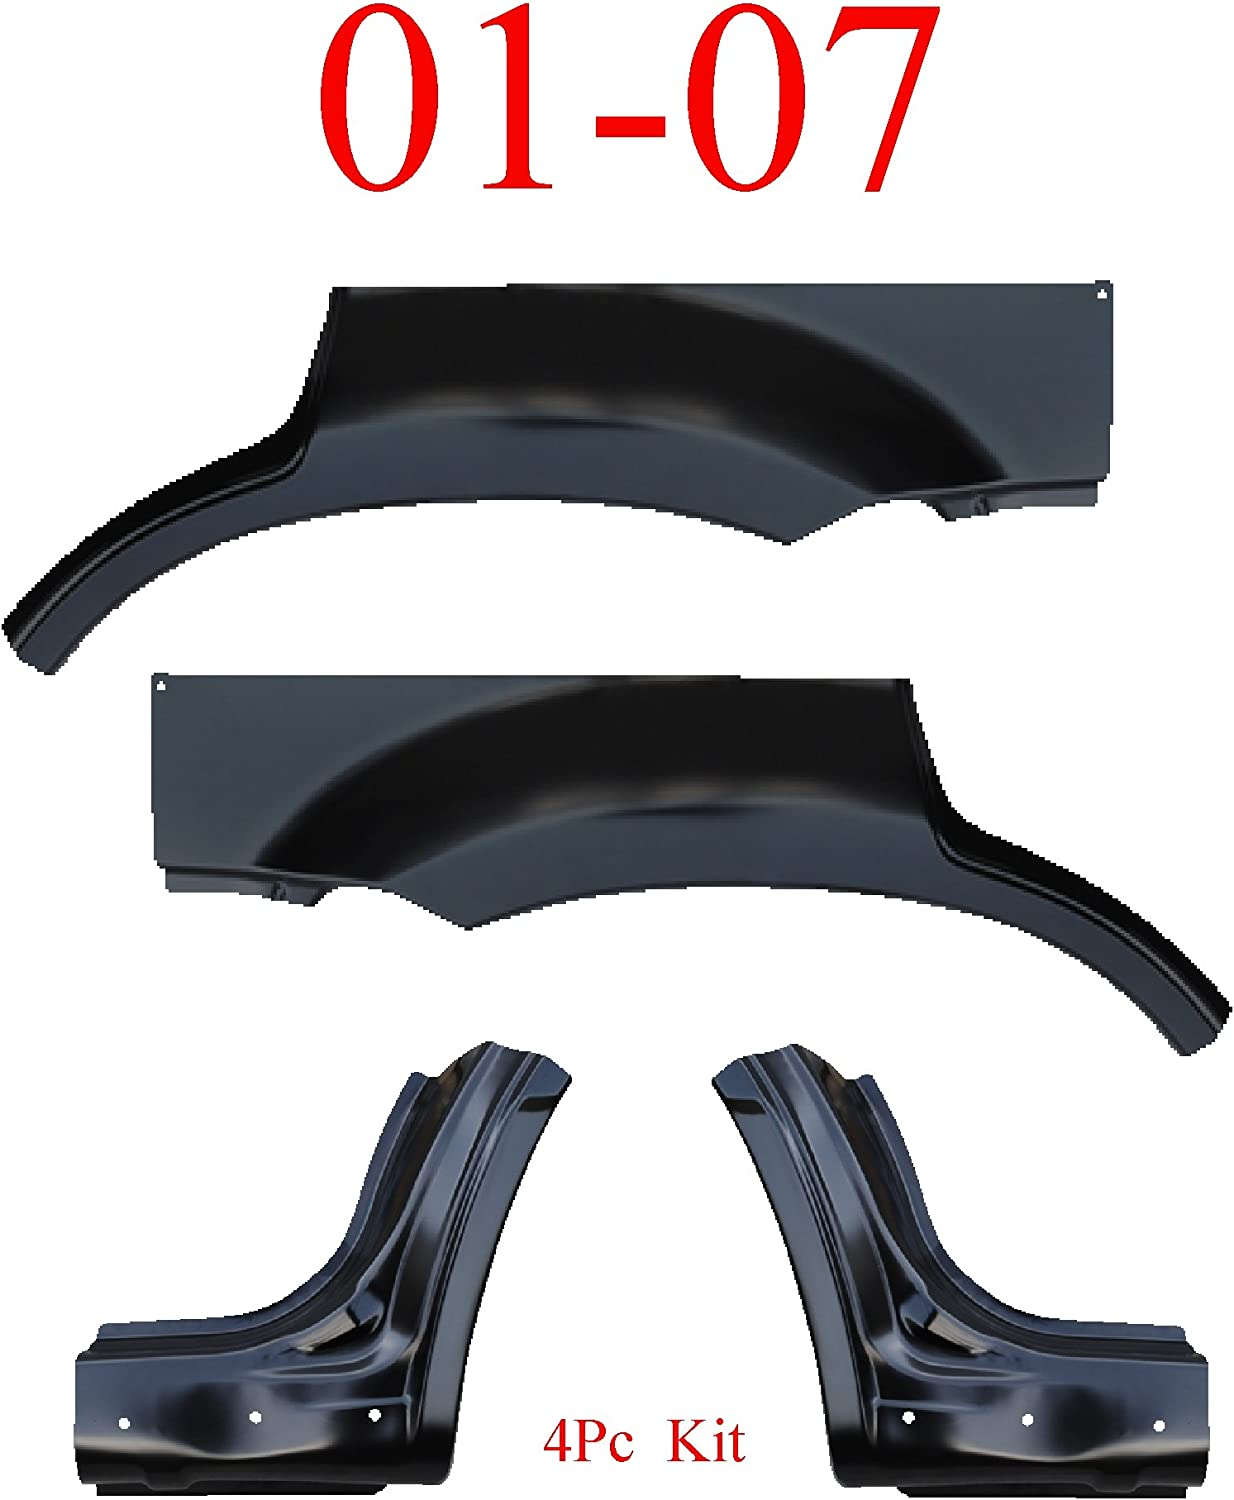 01-07 Escape 4Pc Dog Leg /& Arch Panel Set